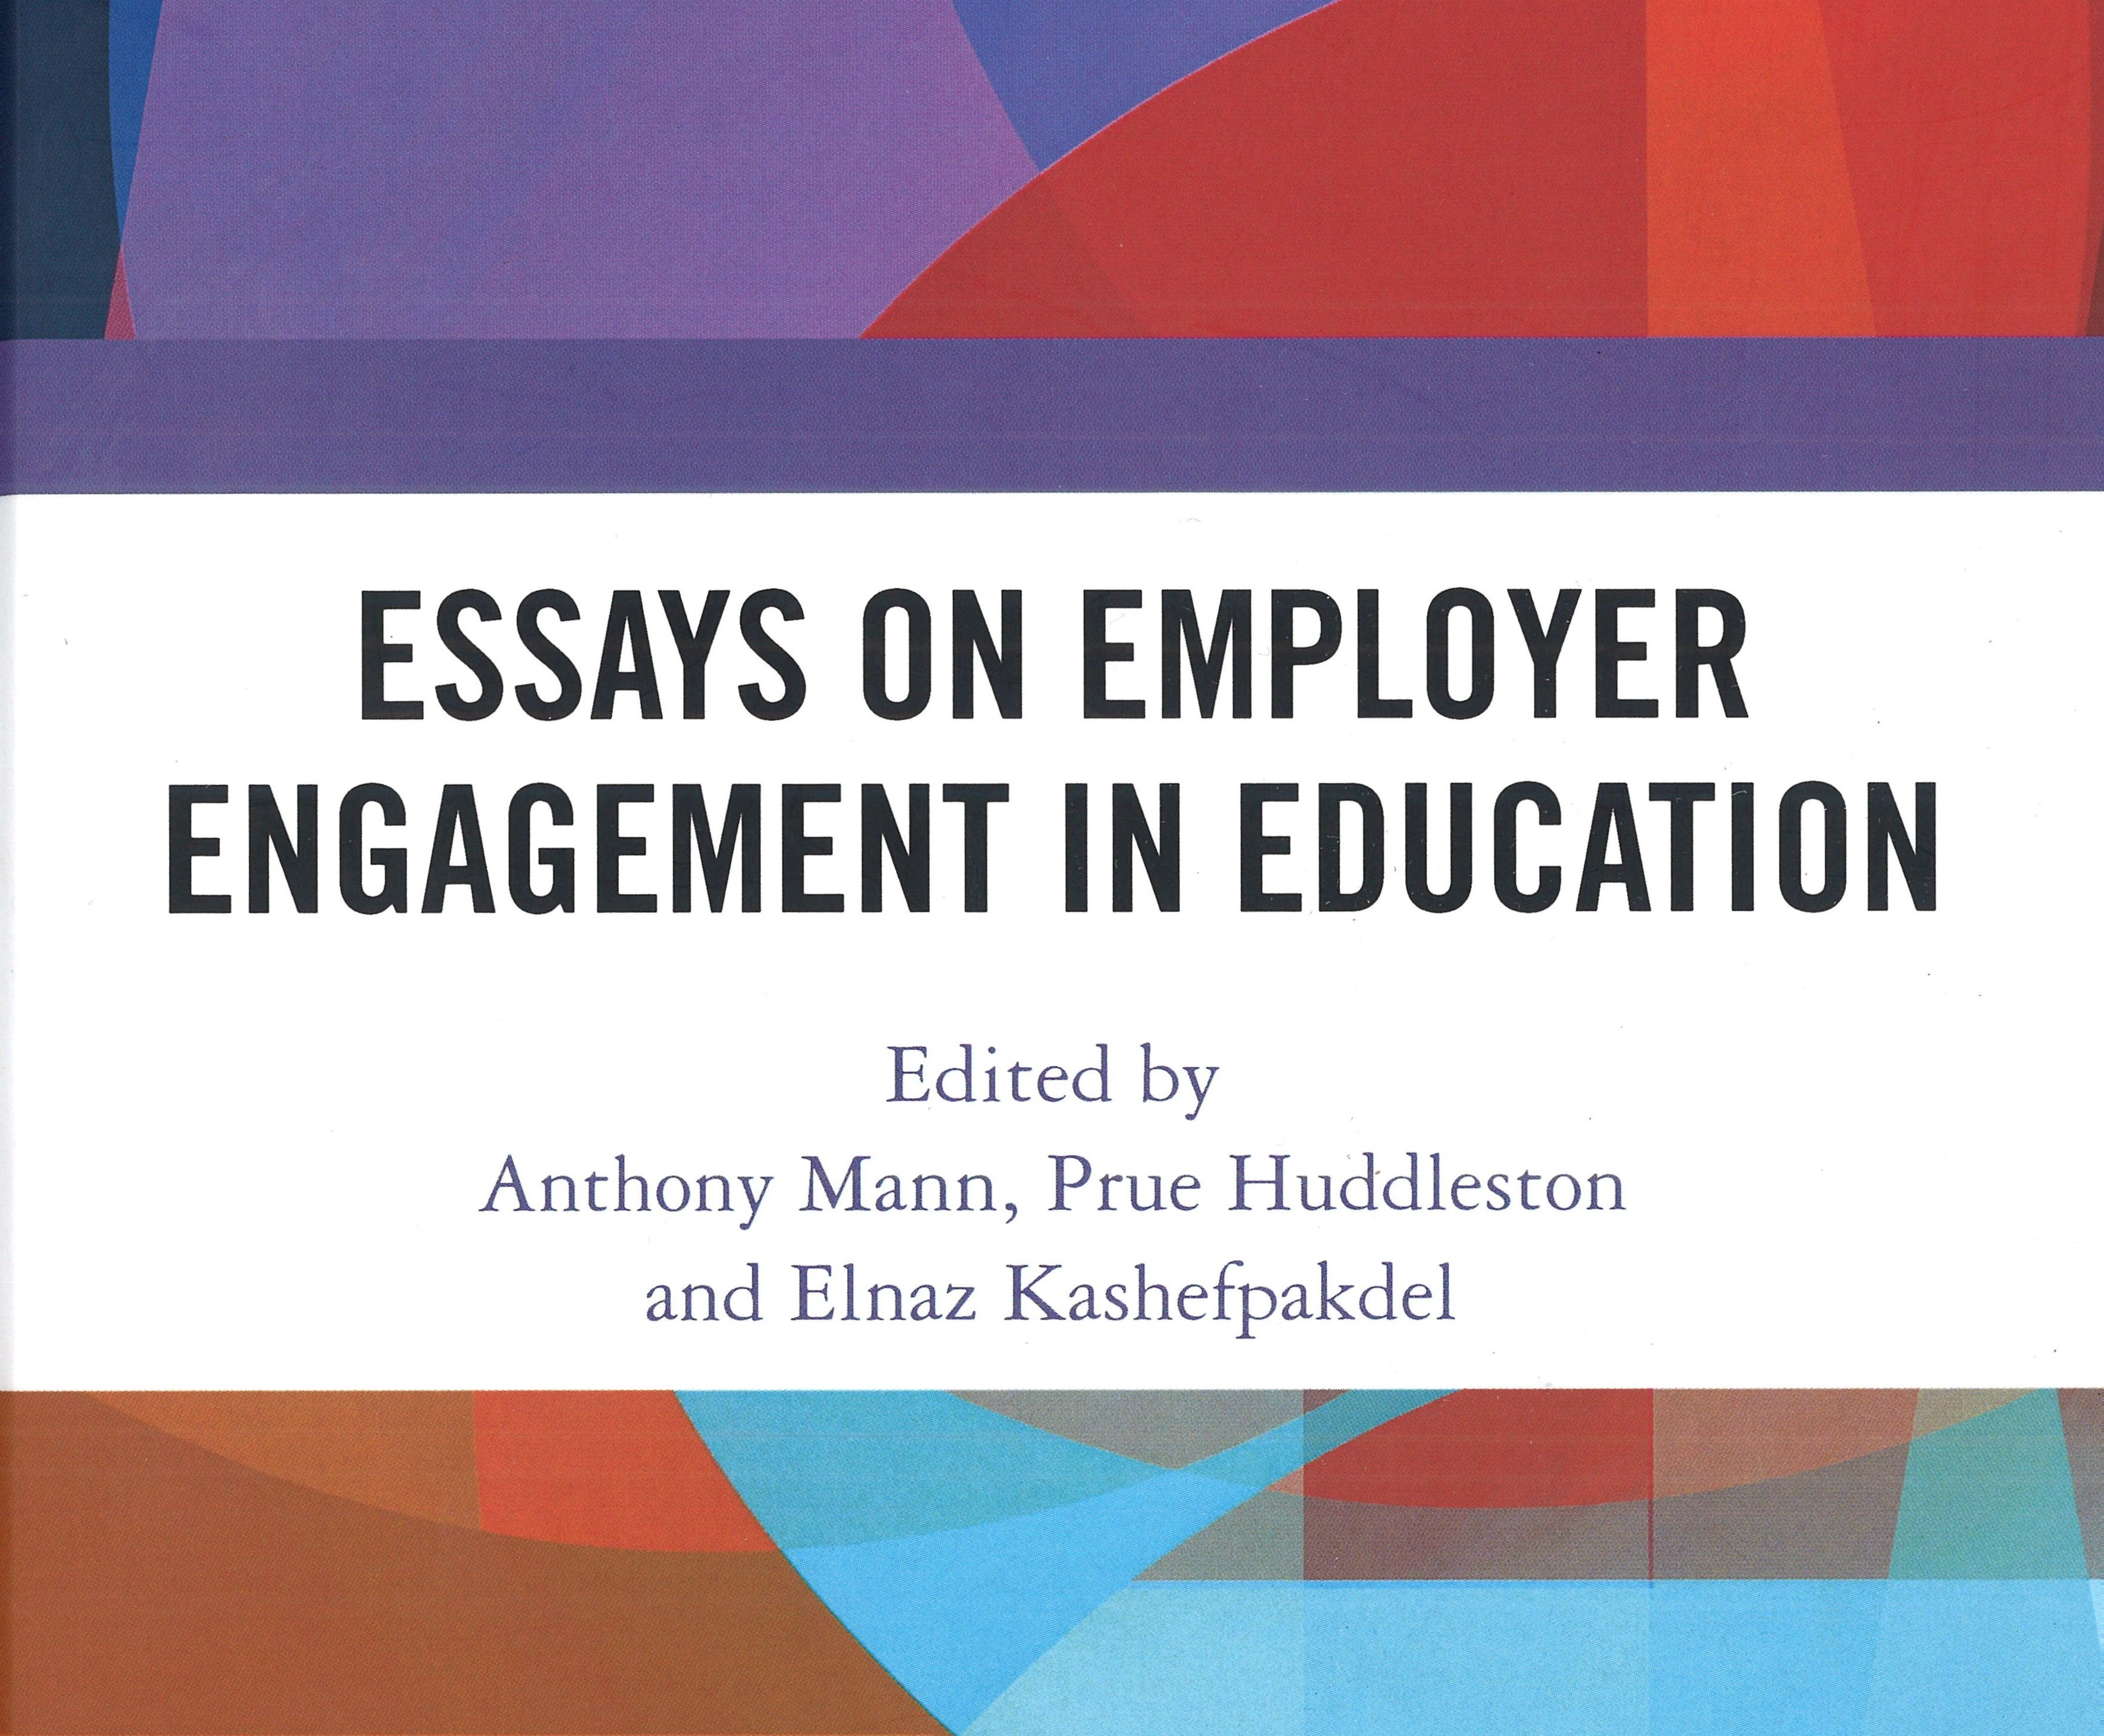 Essays On Employer Engagement In Education  Book Launch  Education   Employability In The Twentyfirst Century And The Power Of Social And  Cultural Capital In Enabling Access To Economic Opportunities Essays On  Employer